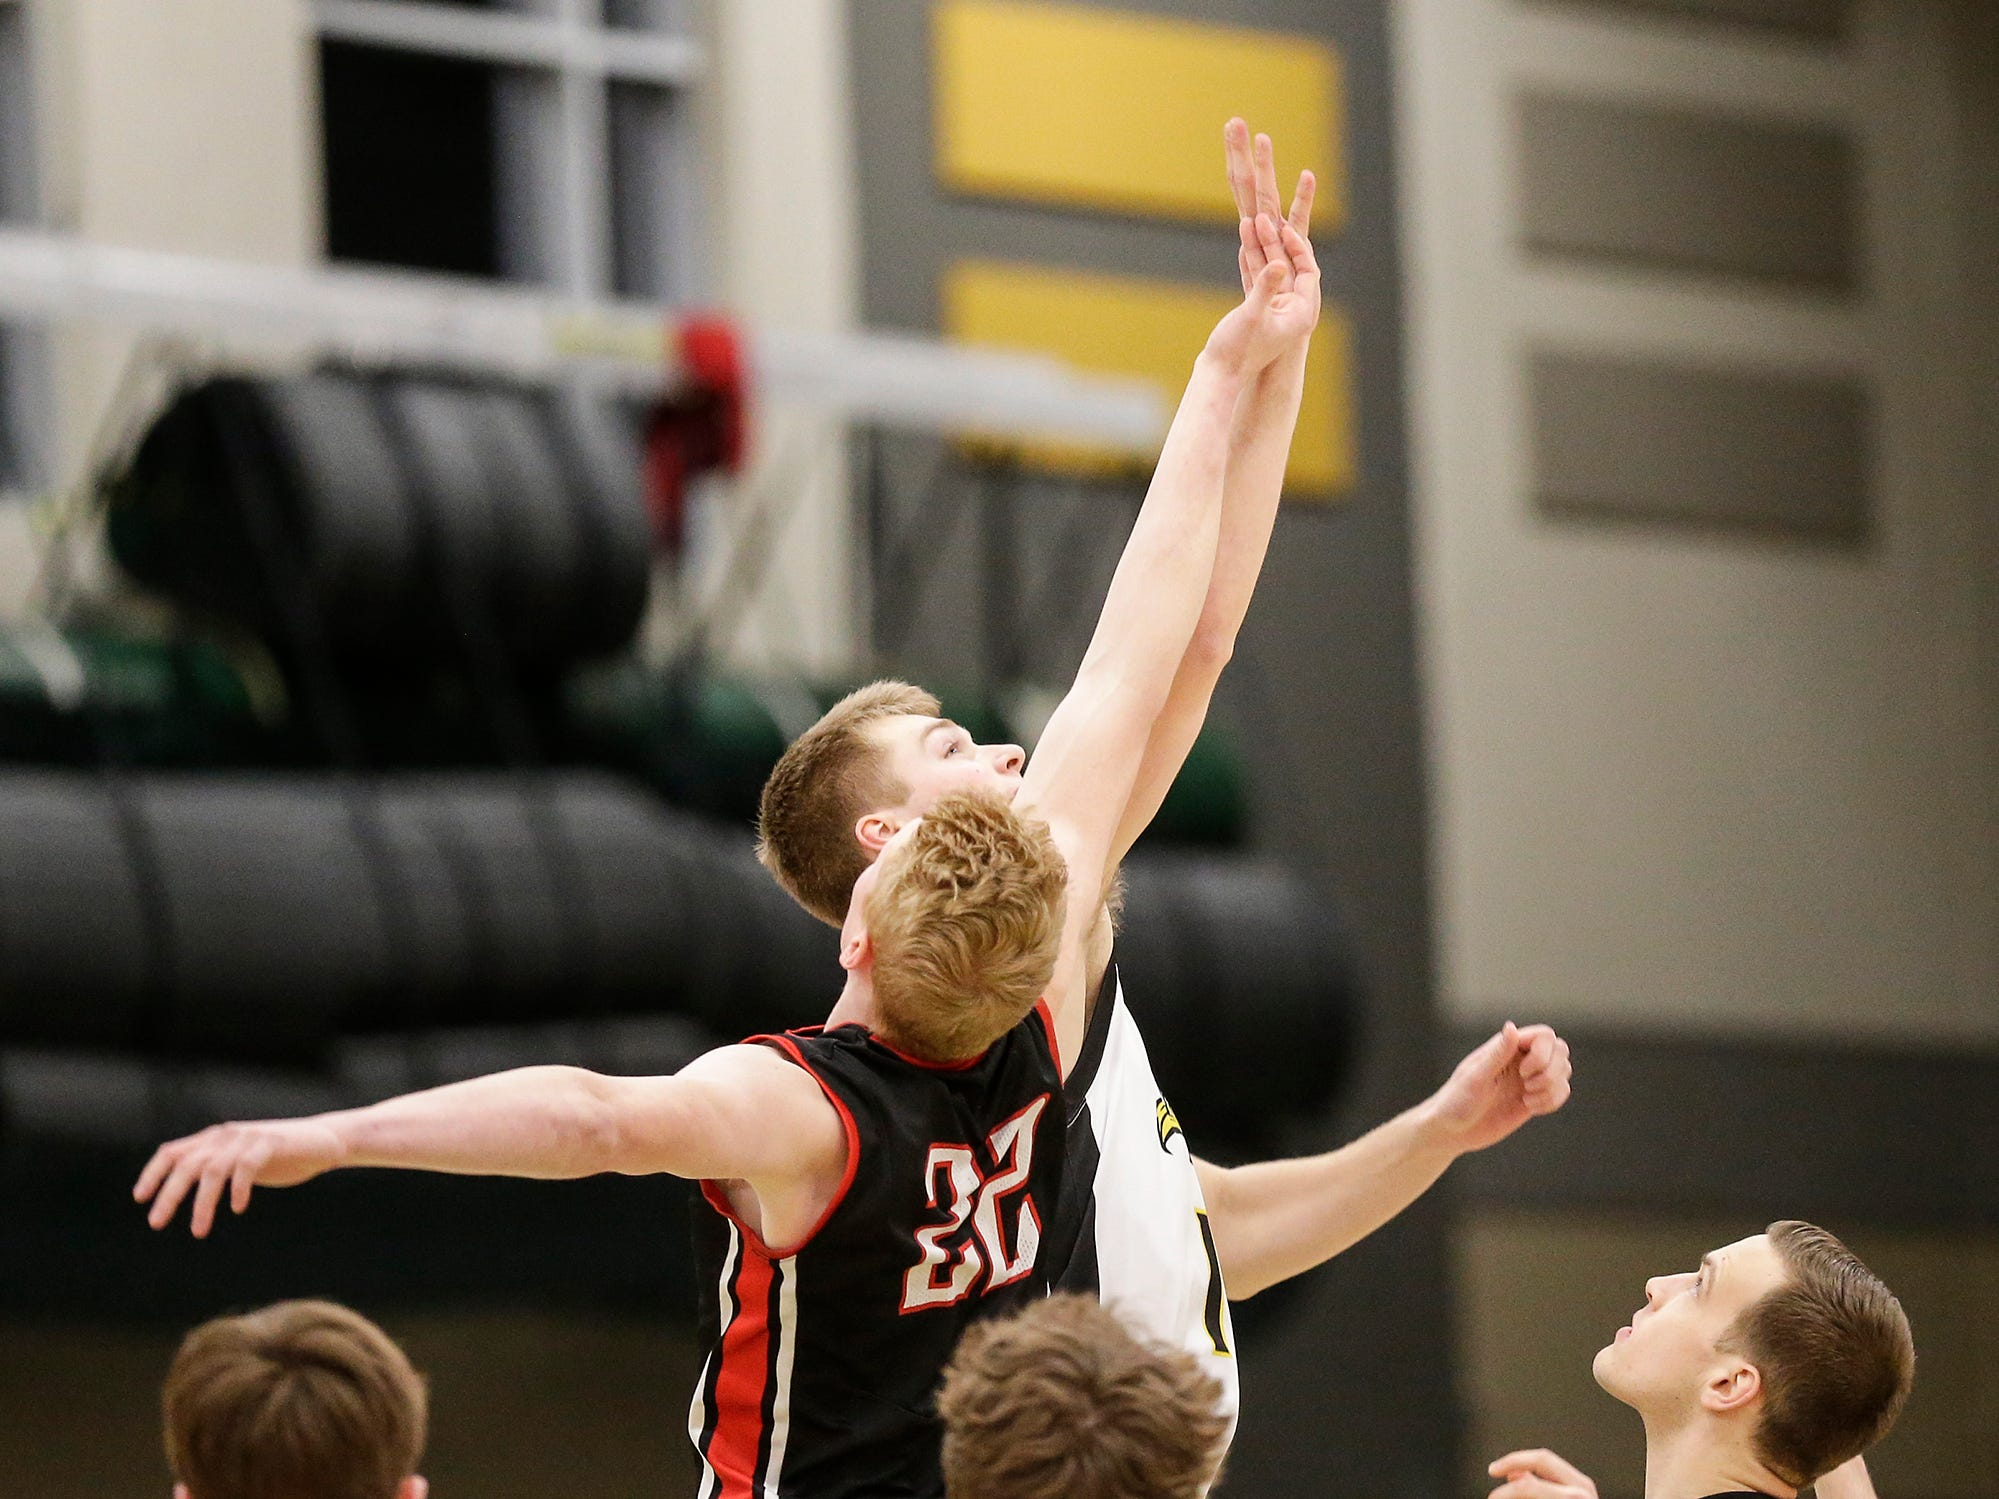 Waupun High School boys basketball's Marcus Domask (1) and Columbus High School's Trent Casper battle for the opening tip off during their WIAA division 3 sectional semi-final game Thursday, March 7, 2019 in Beaver Dam, Wis. Waupun won the game 79-36. Doug Raflik/USA TODAY NETWORK-Wisconsin